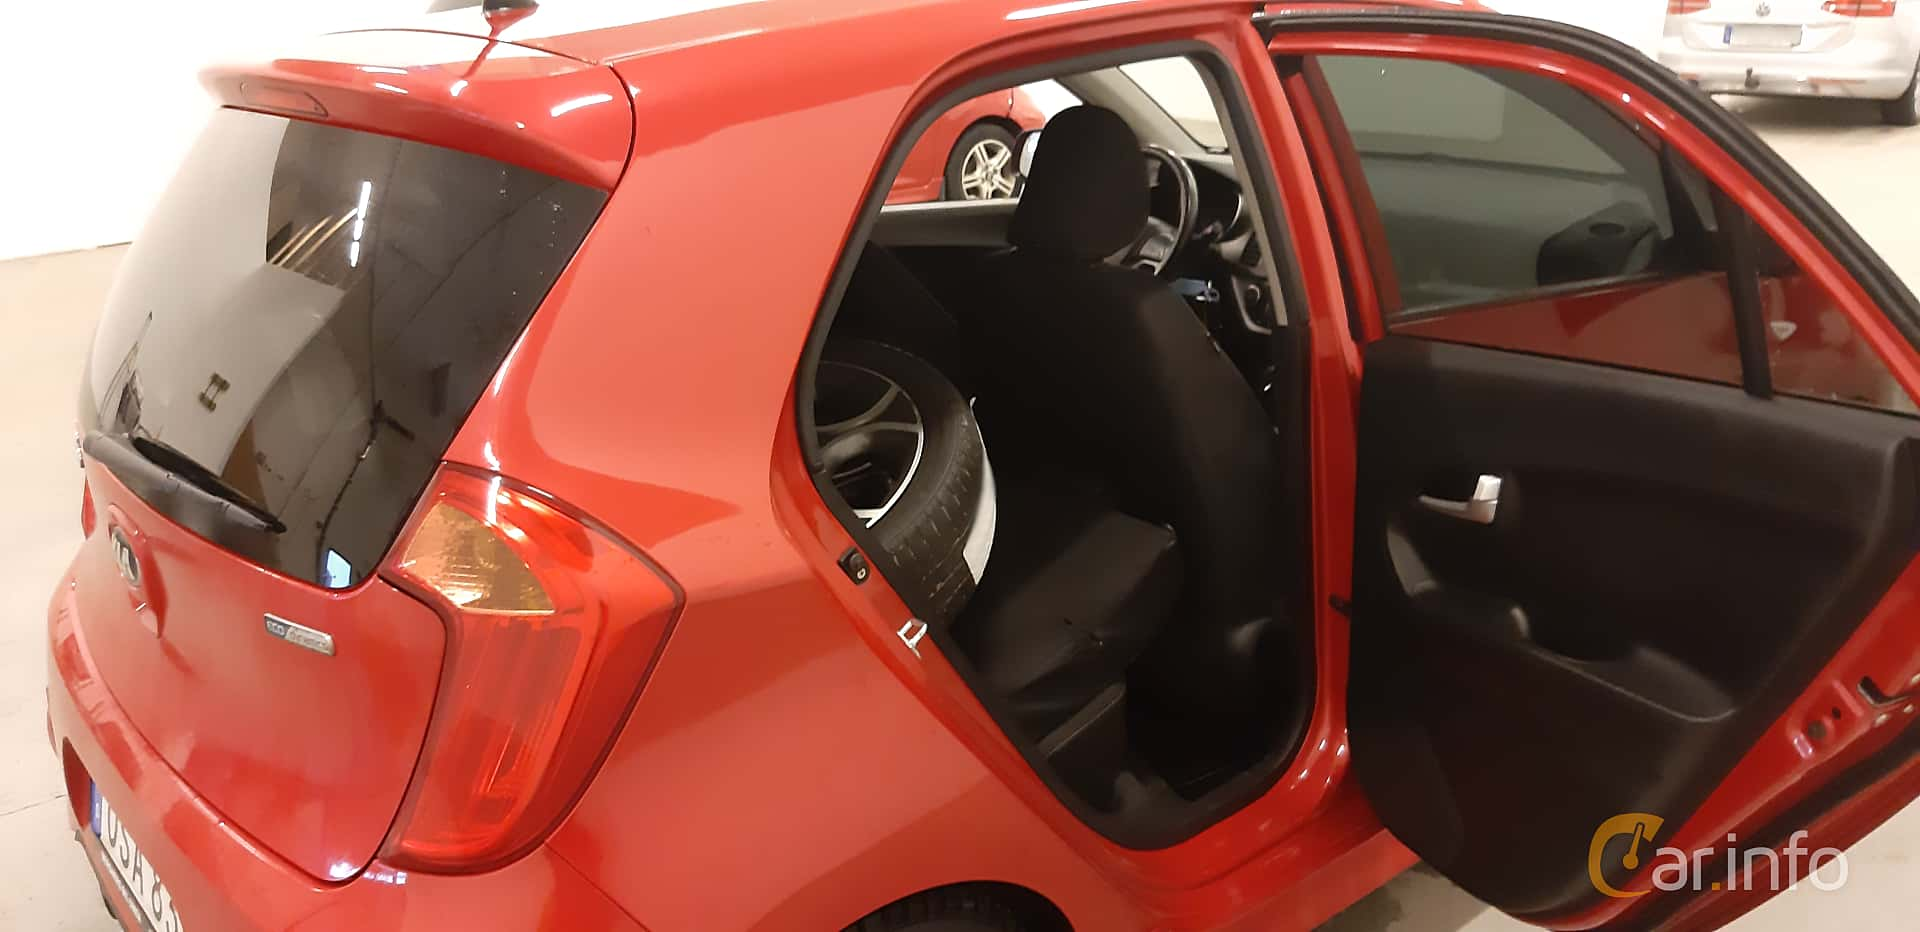 Kia Picanto 5-door 1.0 Manual, 69hp, 2016